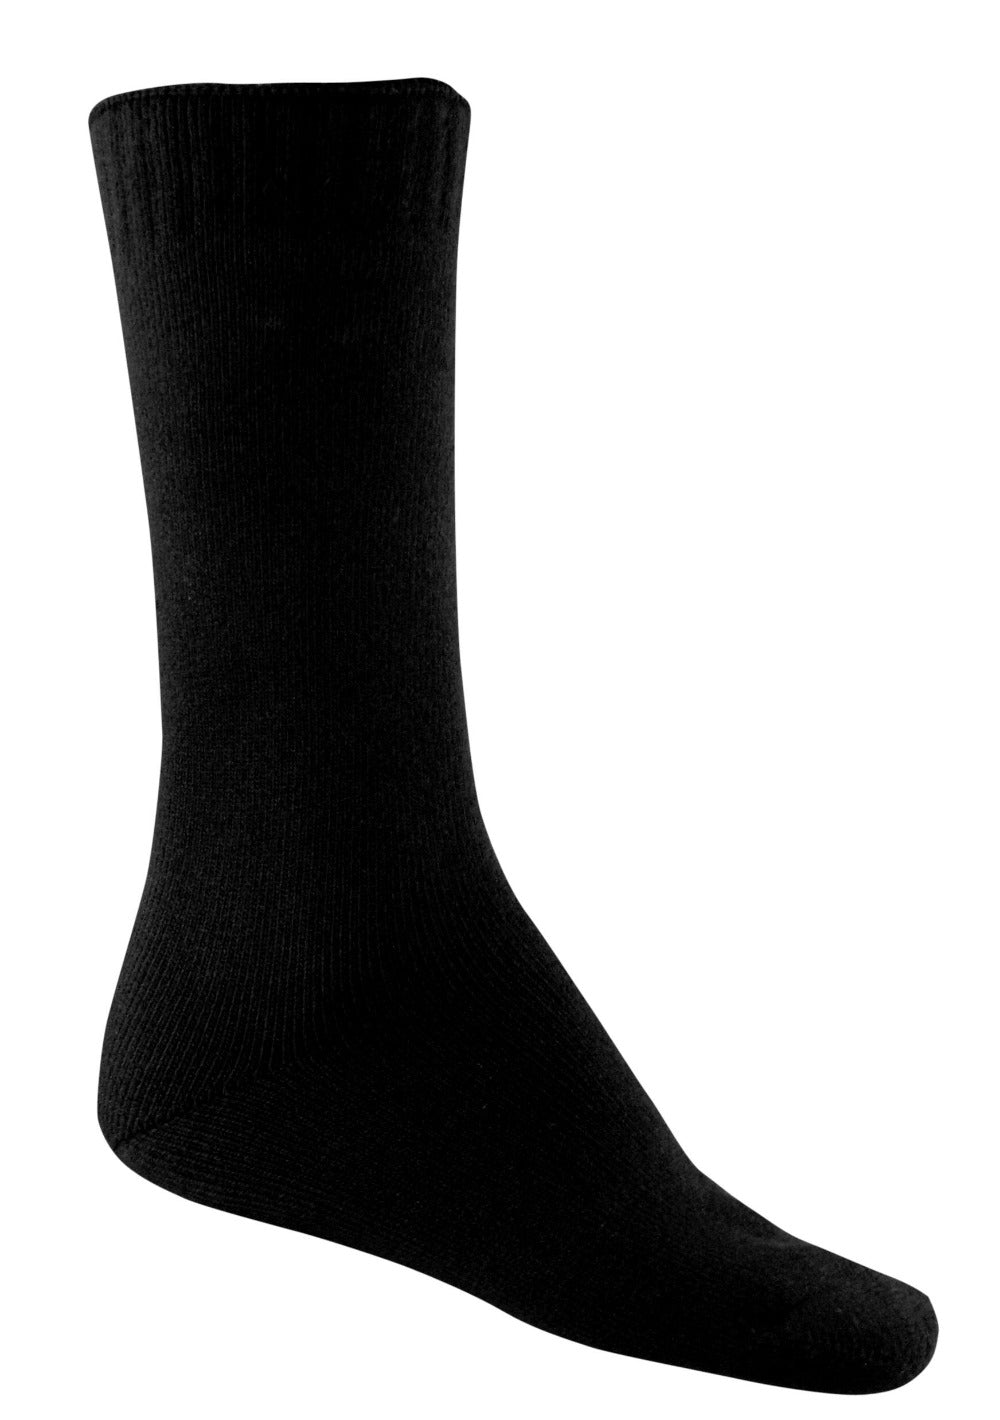 Bamboo Faster Drying Socks - Black